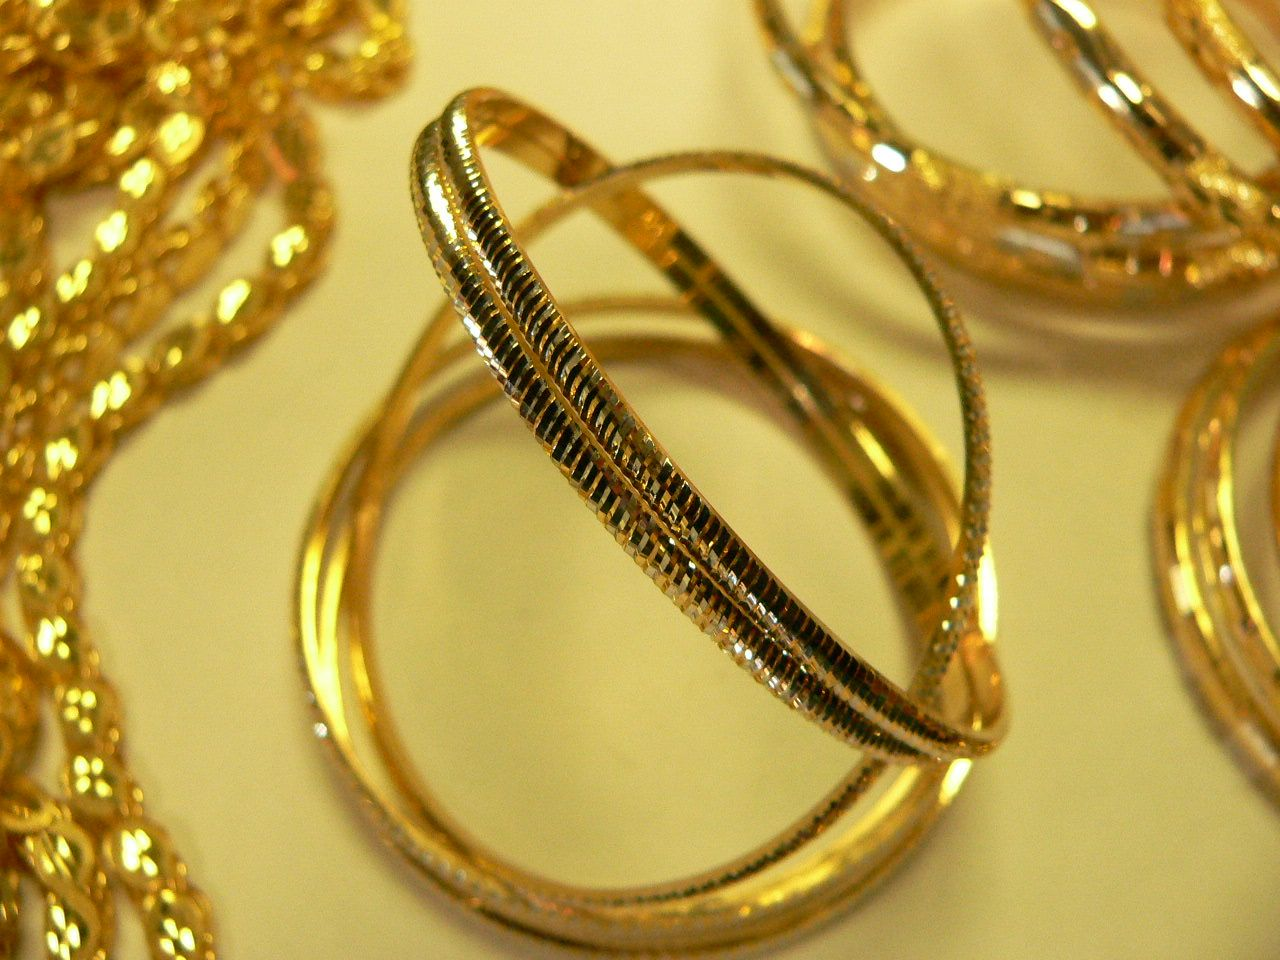 New Bangles in 21 karat gold now at NJ Diamonds Jewelry Pinterest